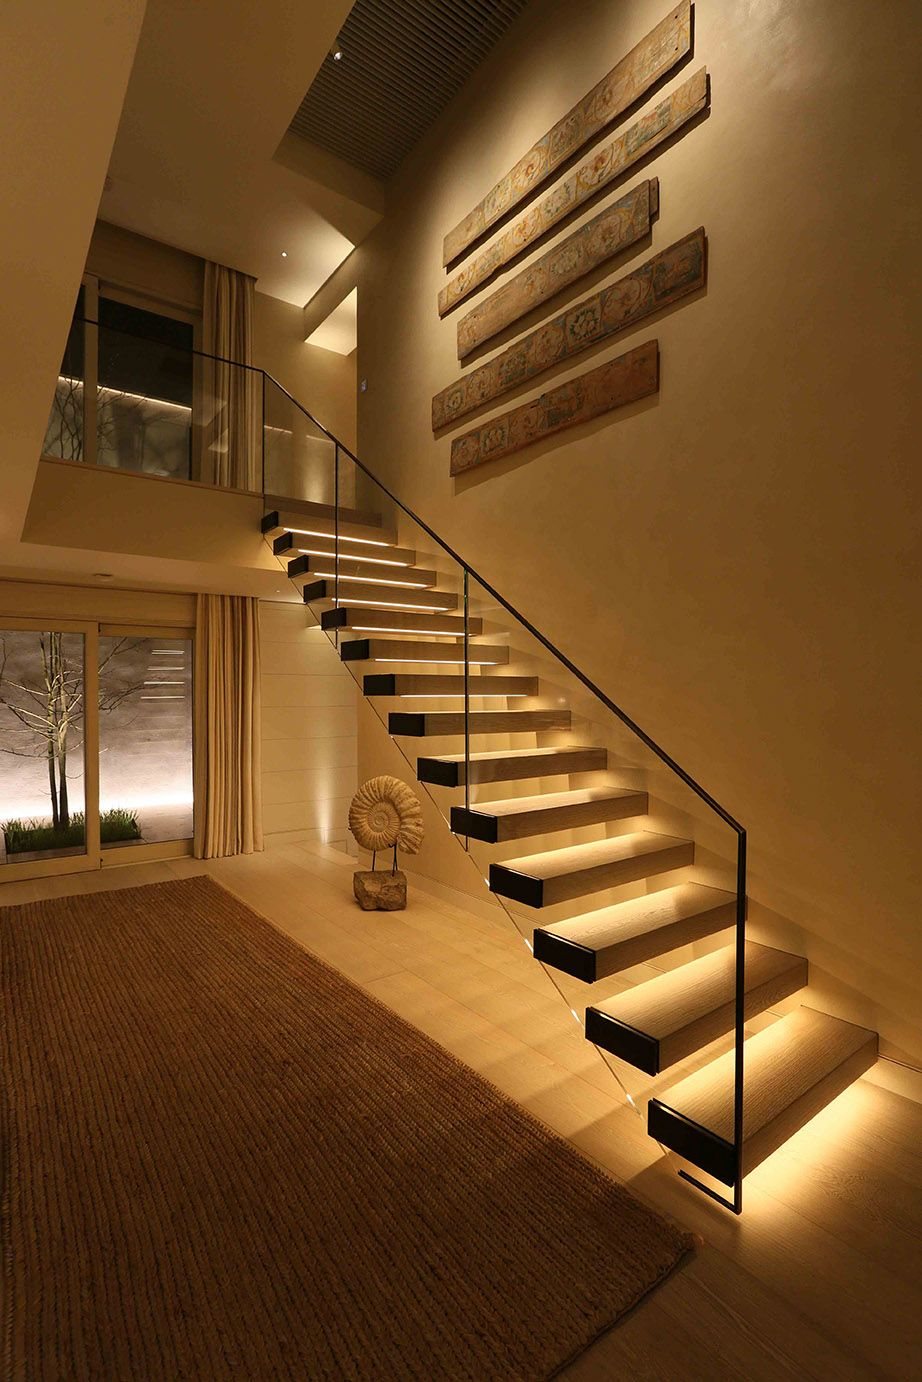 stair lighting. 10 Most Popular Light For Stairways Ideas | Tags: Led Staircase Accent Lighting, Stairway Banister Lighting Ideas, Stair